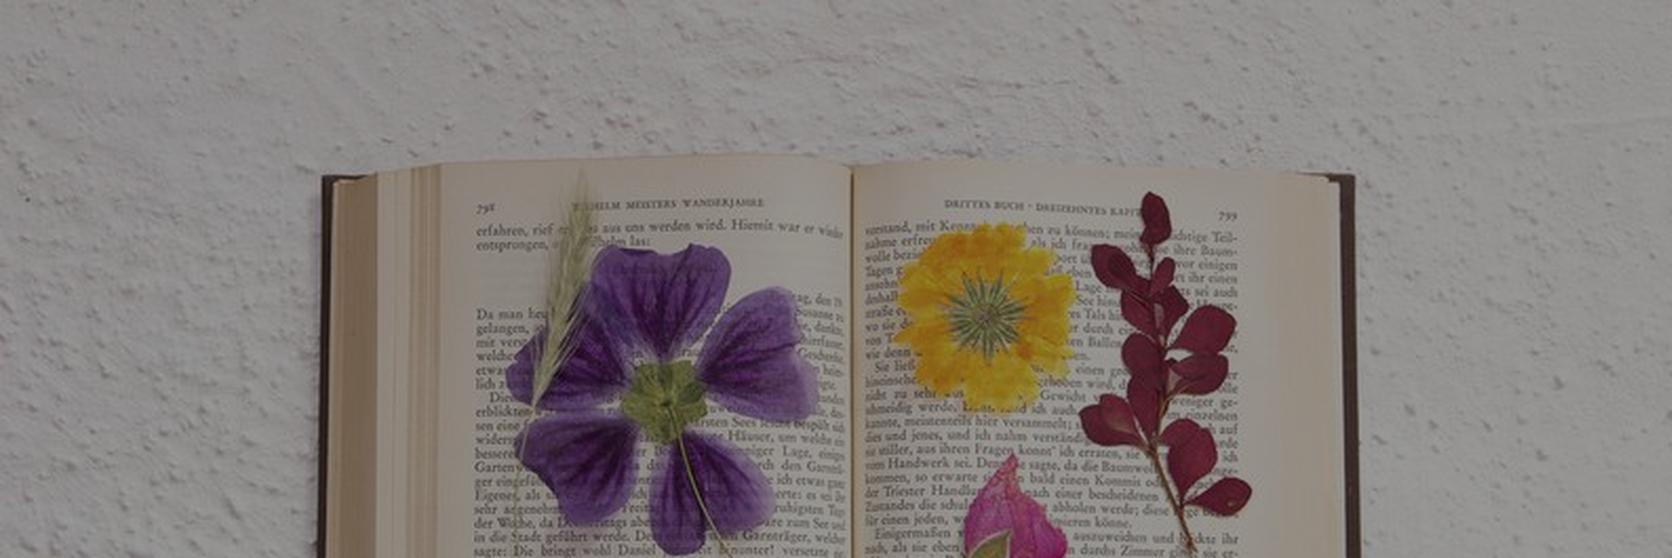 how-to-press-flower-1